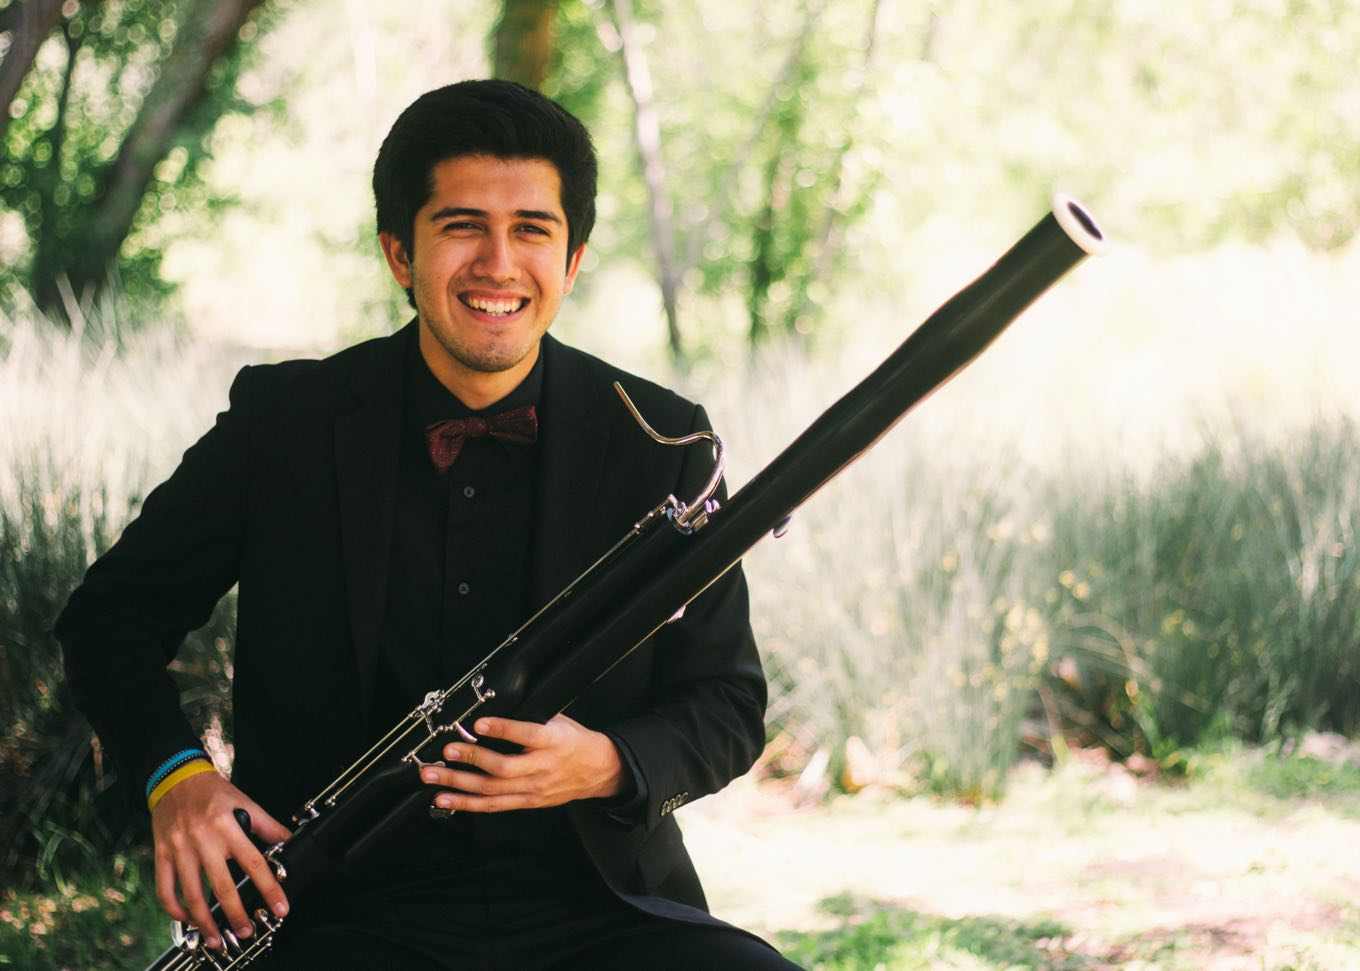 Michael B. a recipient of a bassoon from House of Blues Music Forward Foundation.